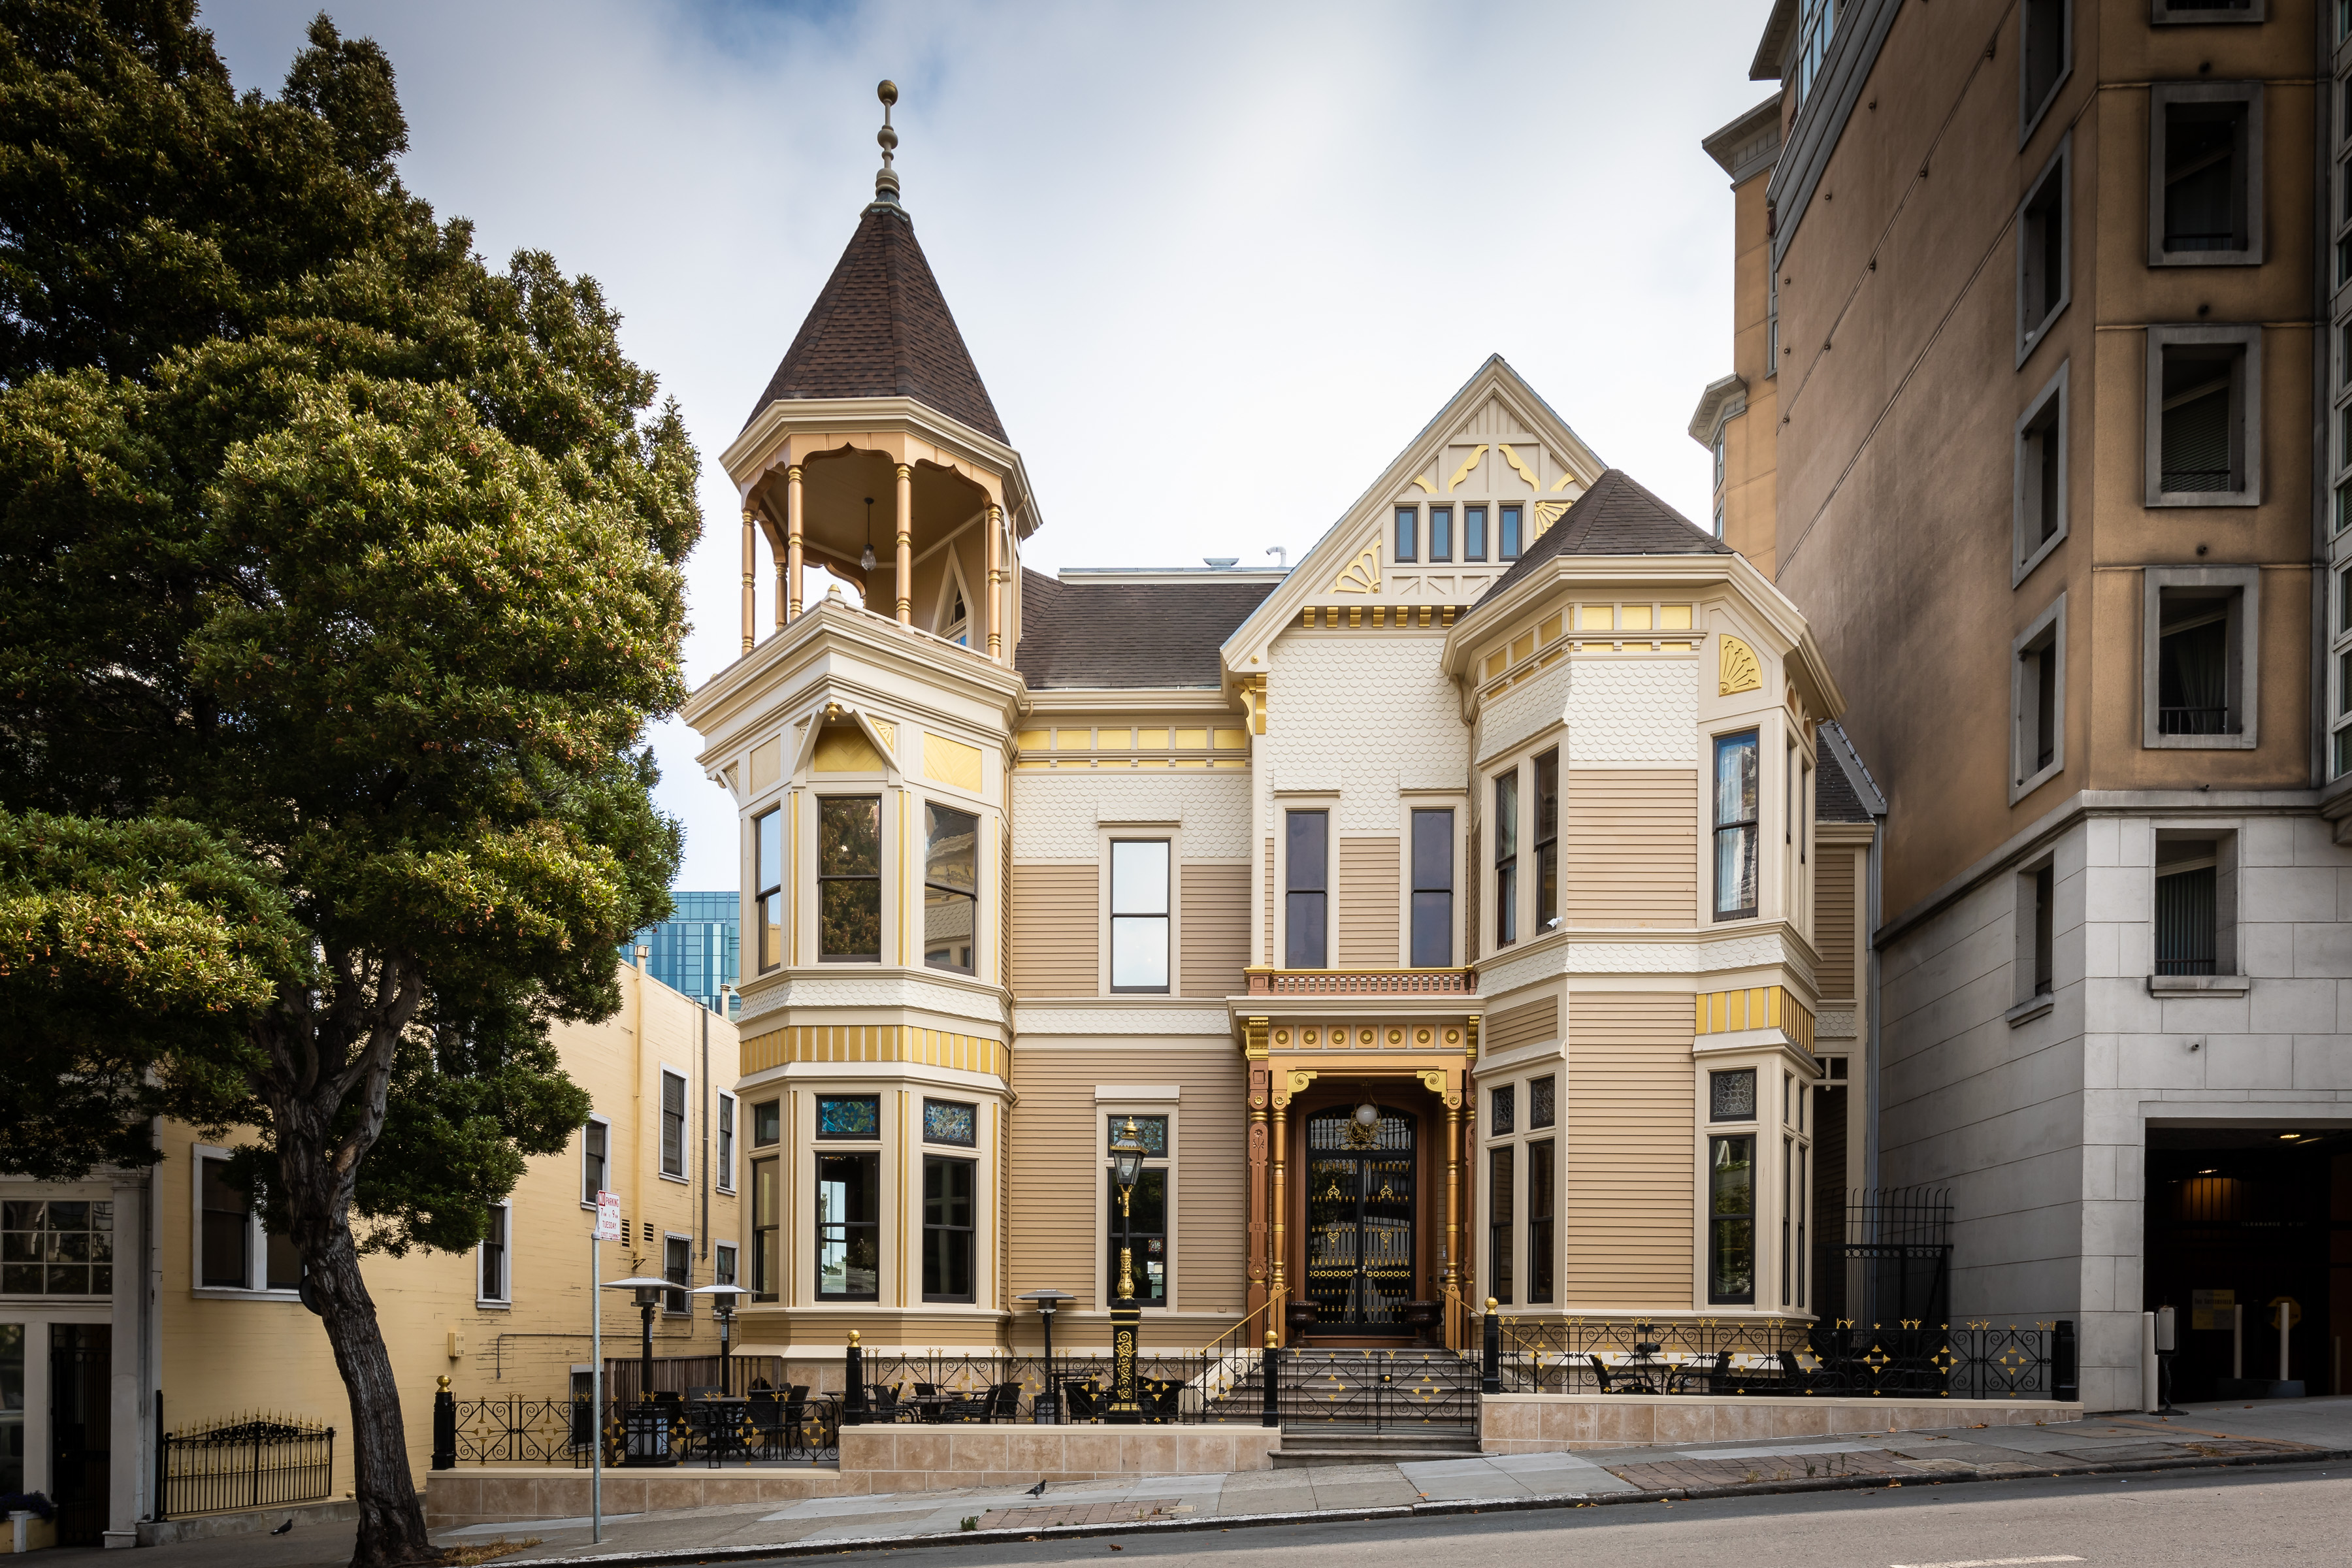 San Francisco's Payne Mansion was the city's most expensive Airbnb. Under new owners it will become a boutique hotel and French restaurant.